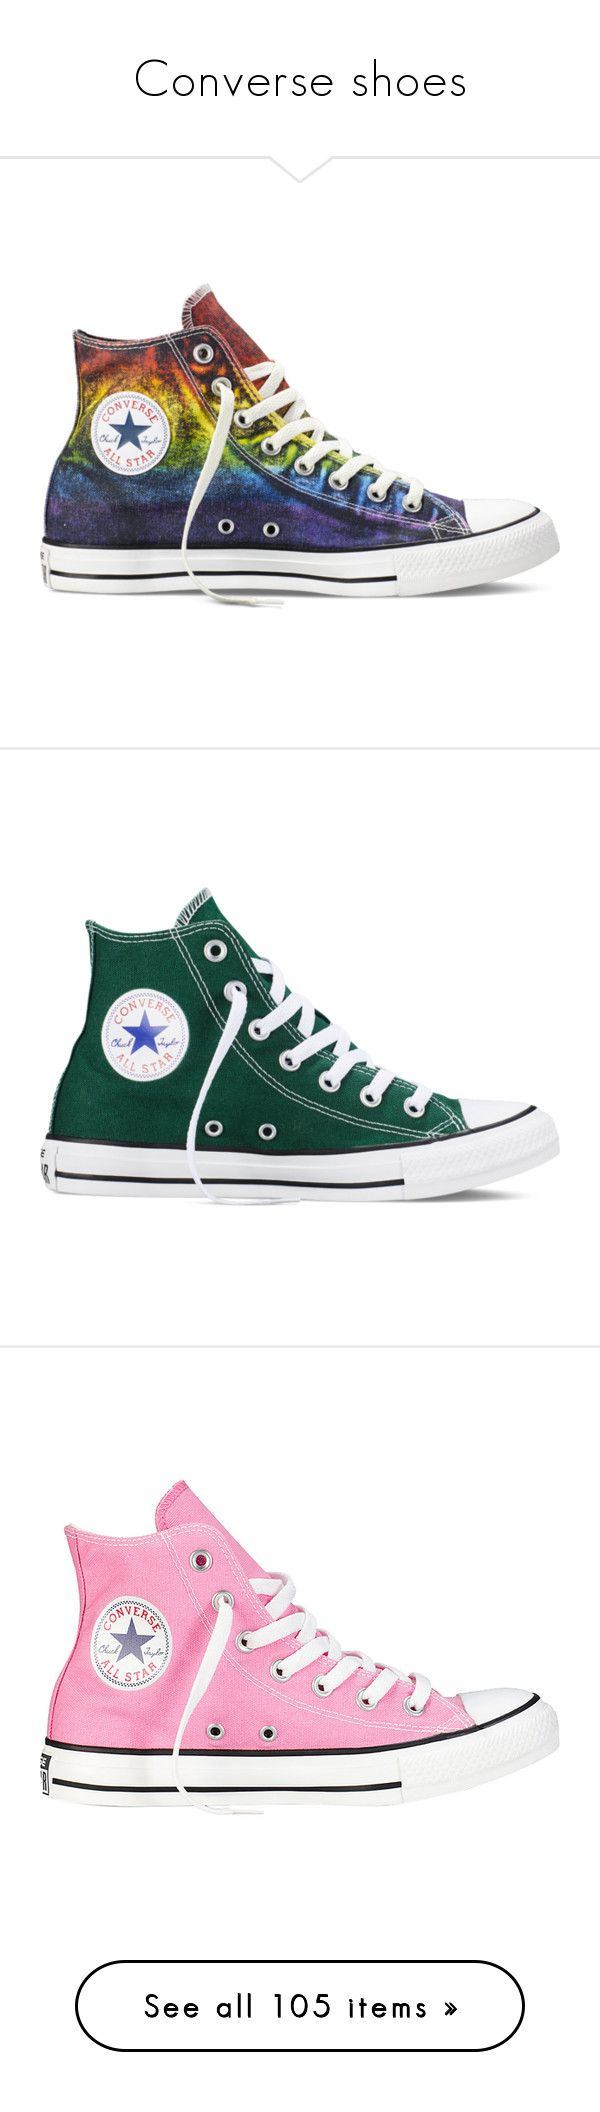 """""""Converse shoes"""" by xo-panda-xo ❤ liked on Polyvore featuring shoes, sneakers, converse, rainbow, purple high tops, high top shoes, red high top shoes, red high tops, converse shoes and green"""